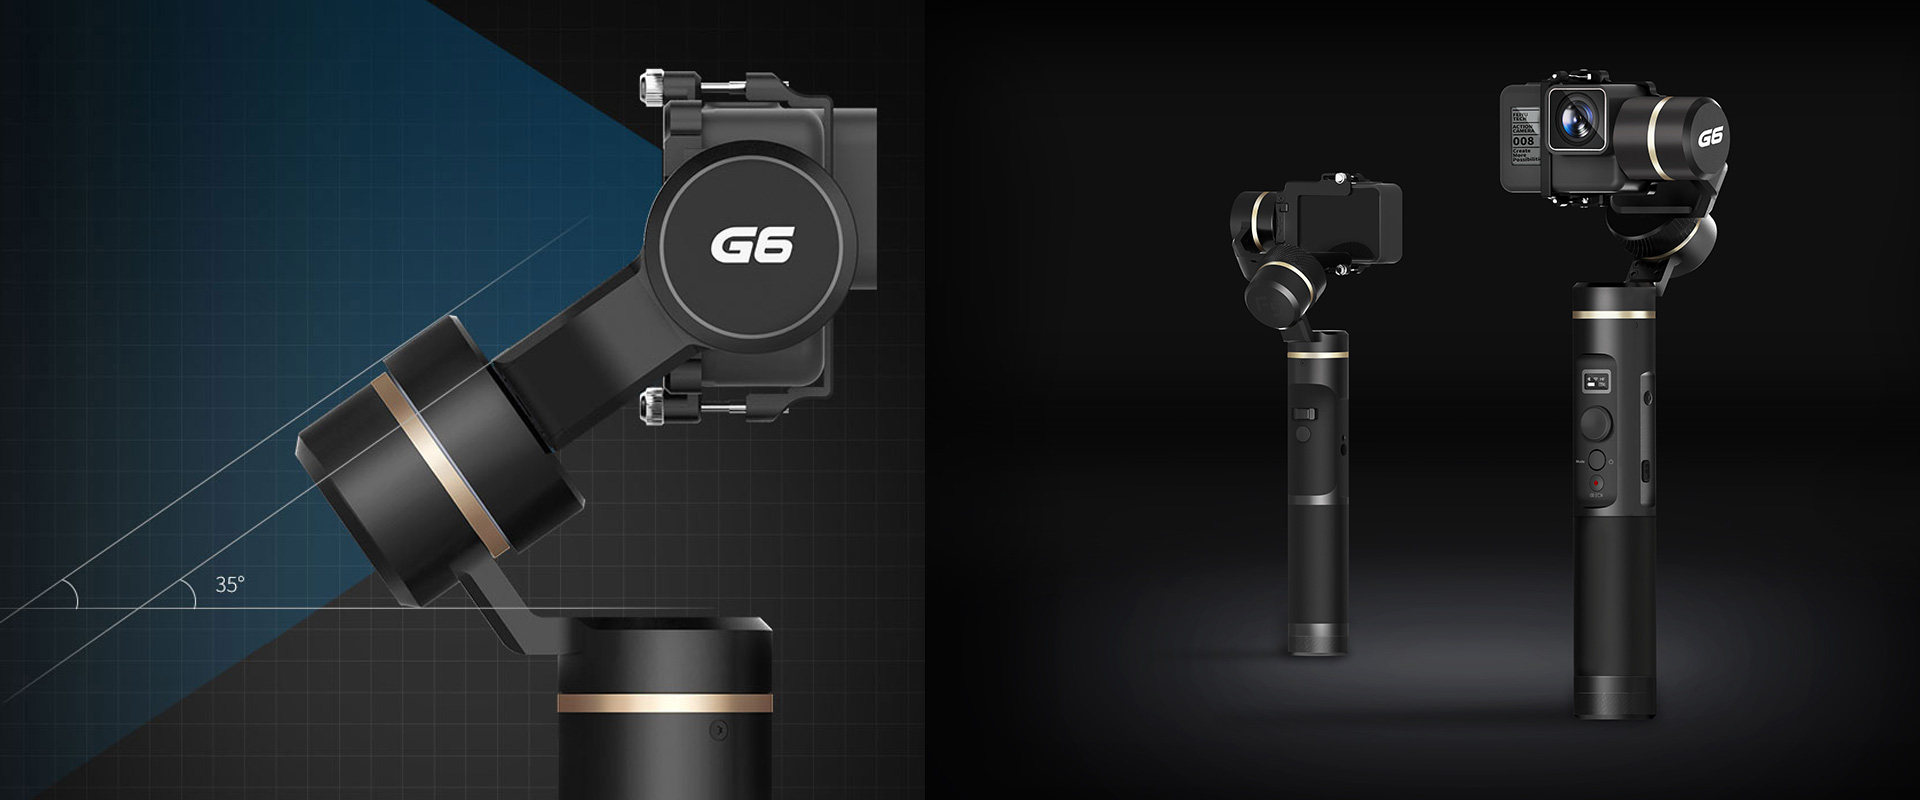 Feiyu G6 - 3-axis, splash-proof gimbal - GoPro Hero6 black, GoPro Hero5 black